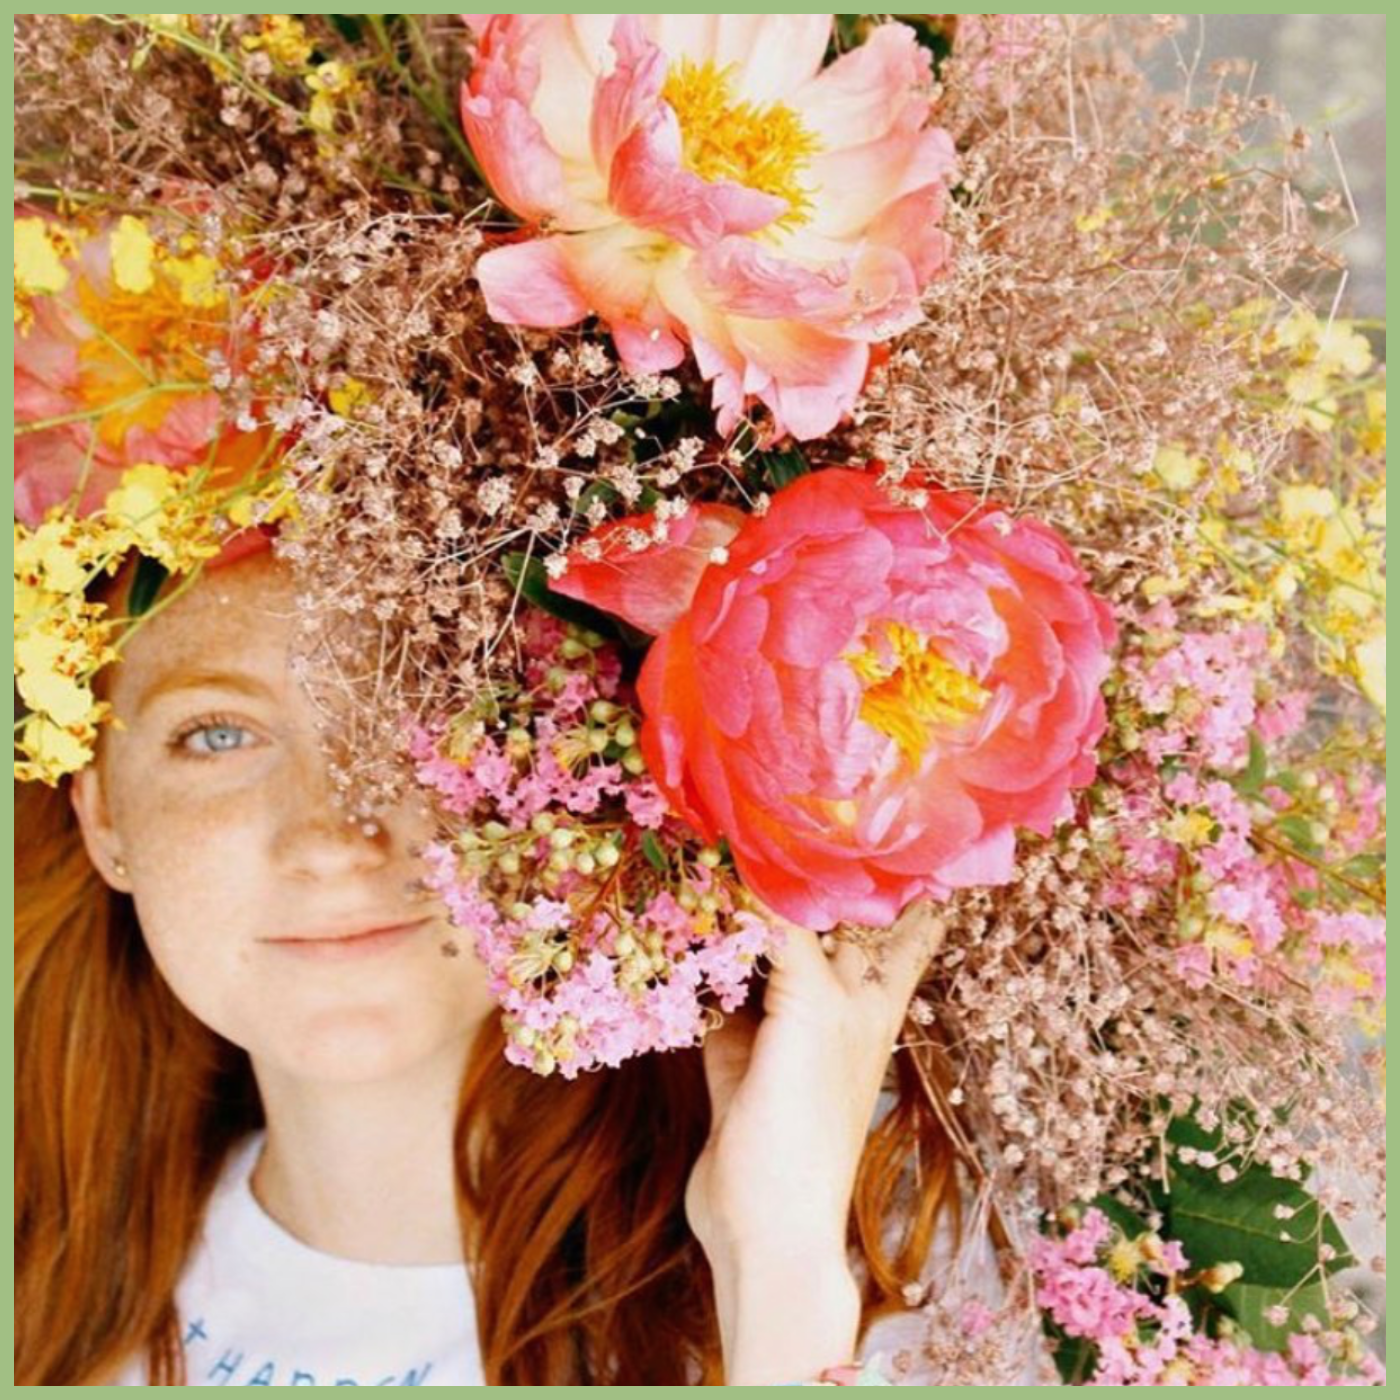 girl smiling in a large flower headpiece HBO MAX FULL BLOOM show